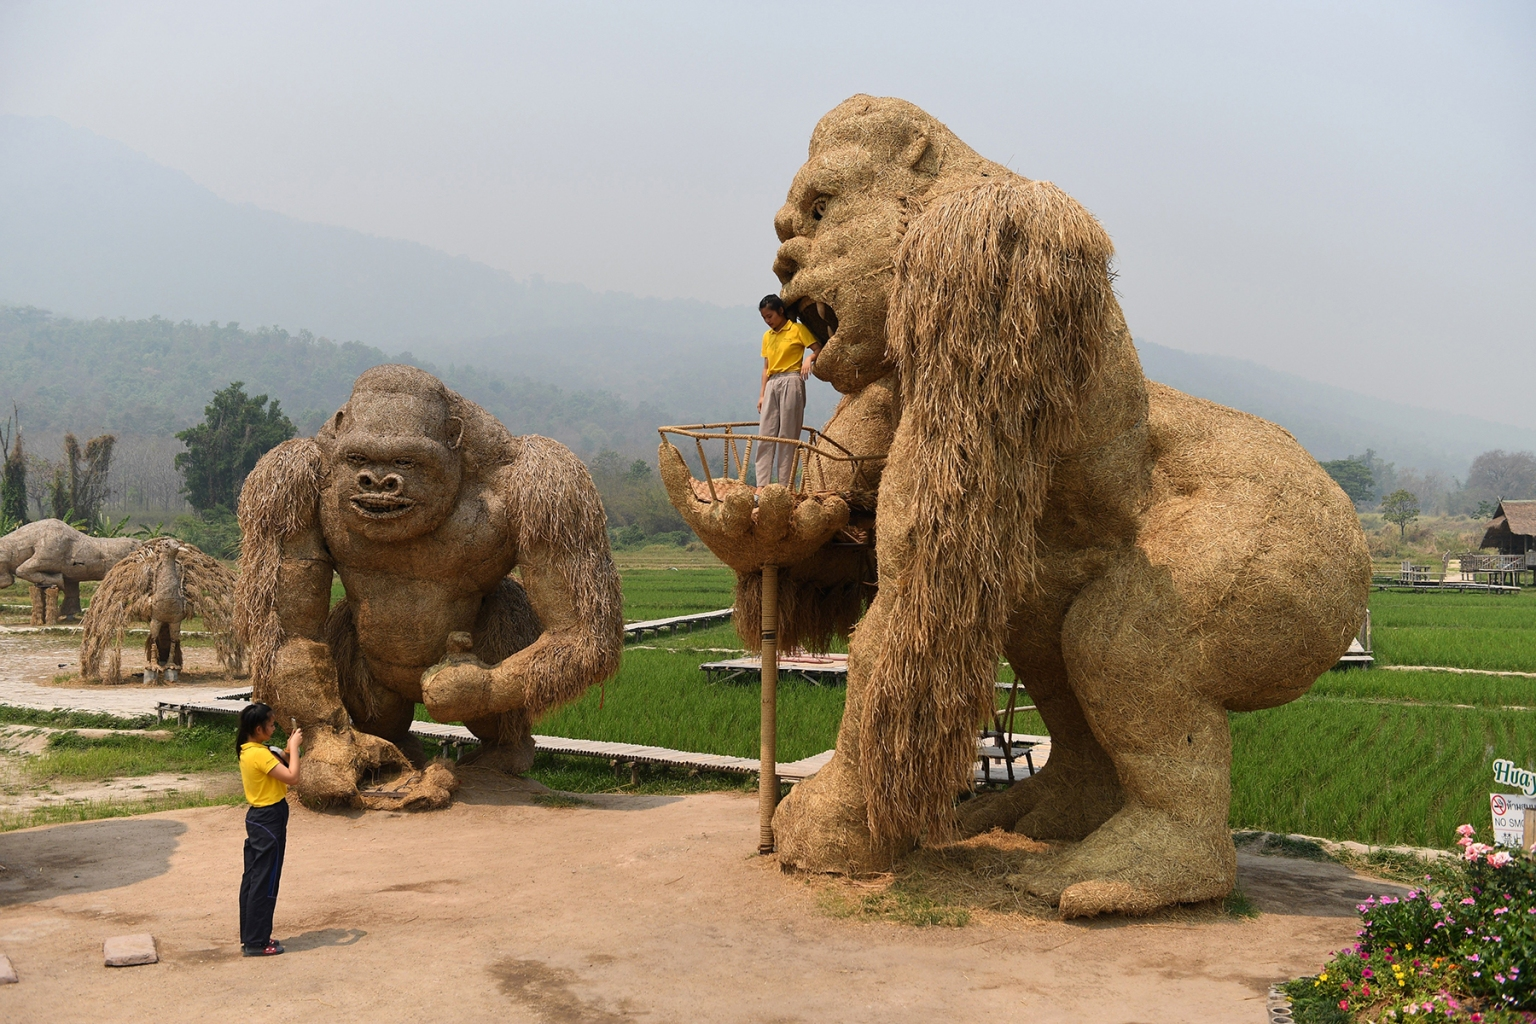 A student has her picture taken with a King Kong sculpture made of straw in the northern Thai province of Chiang Mai on April 3. LILLIAN SUWANRUMPHA/AFP/Getty Images